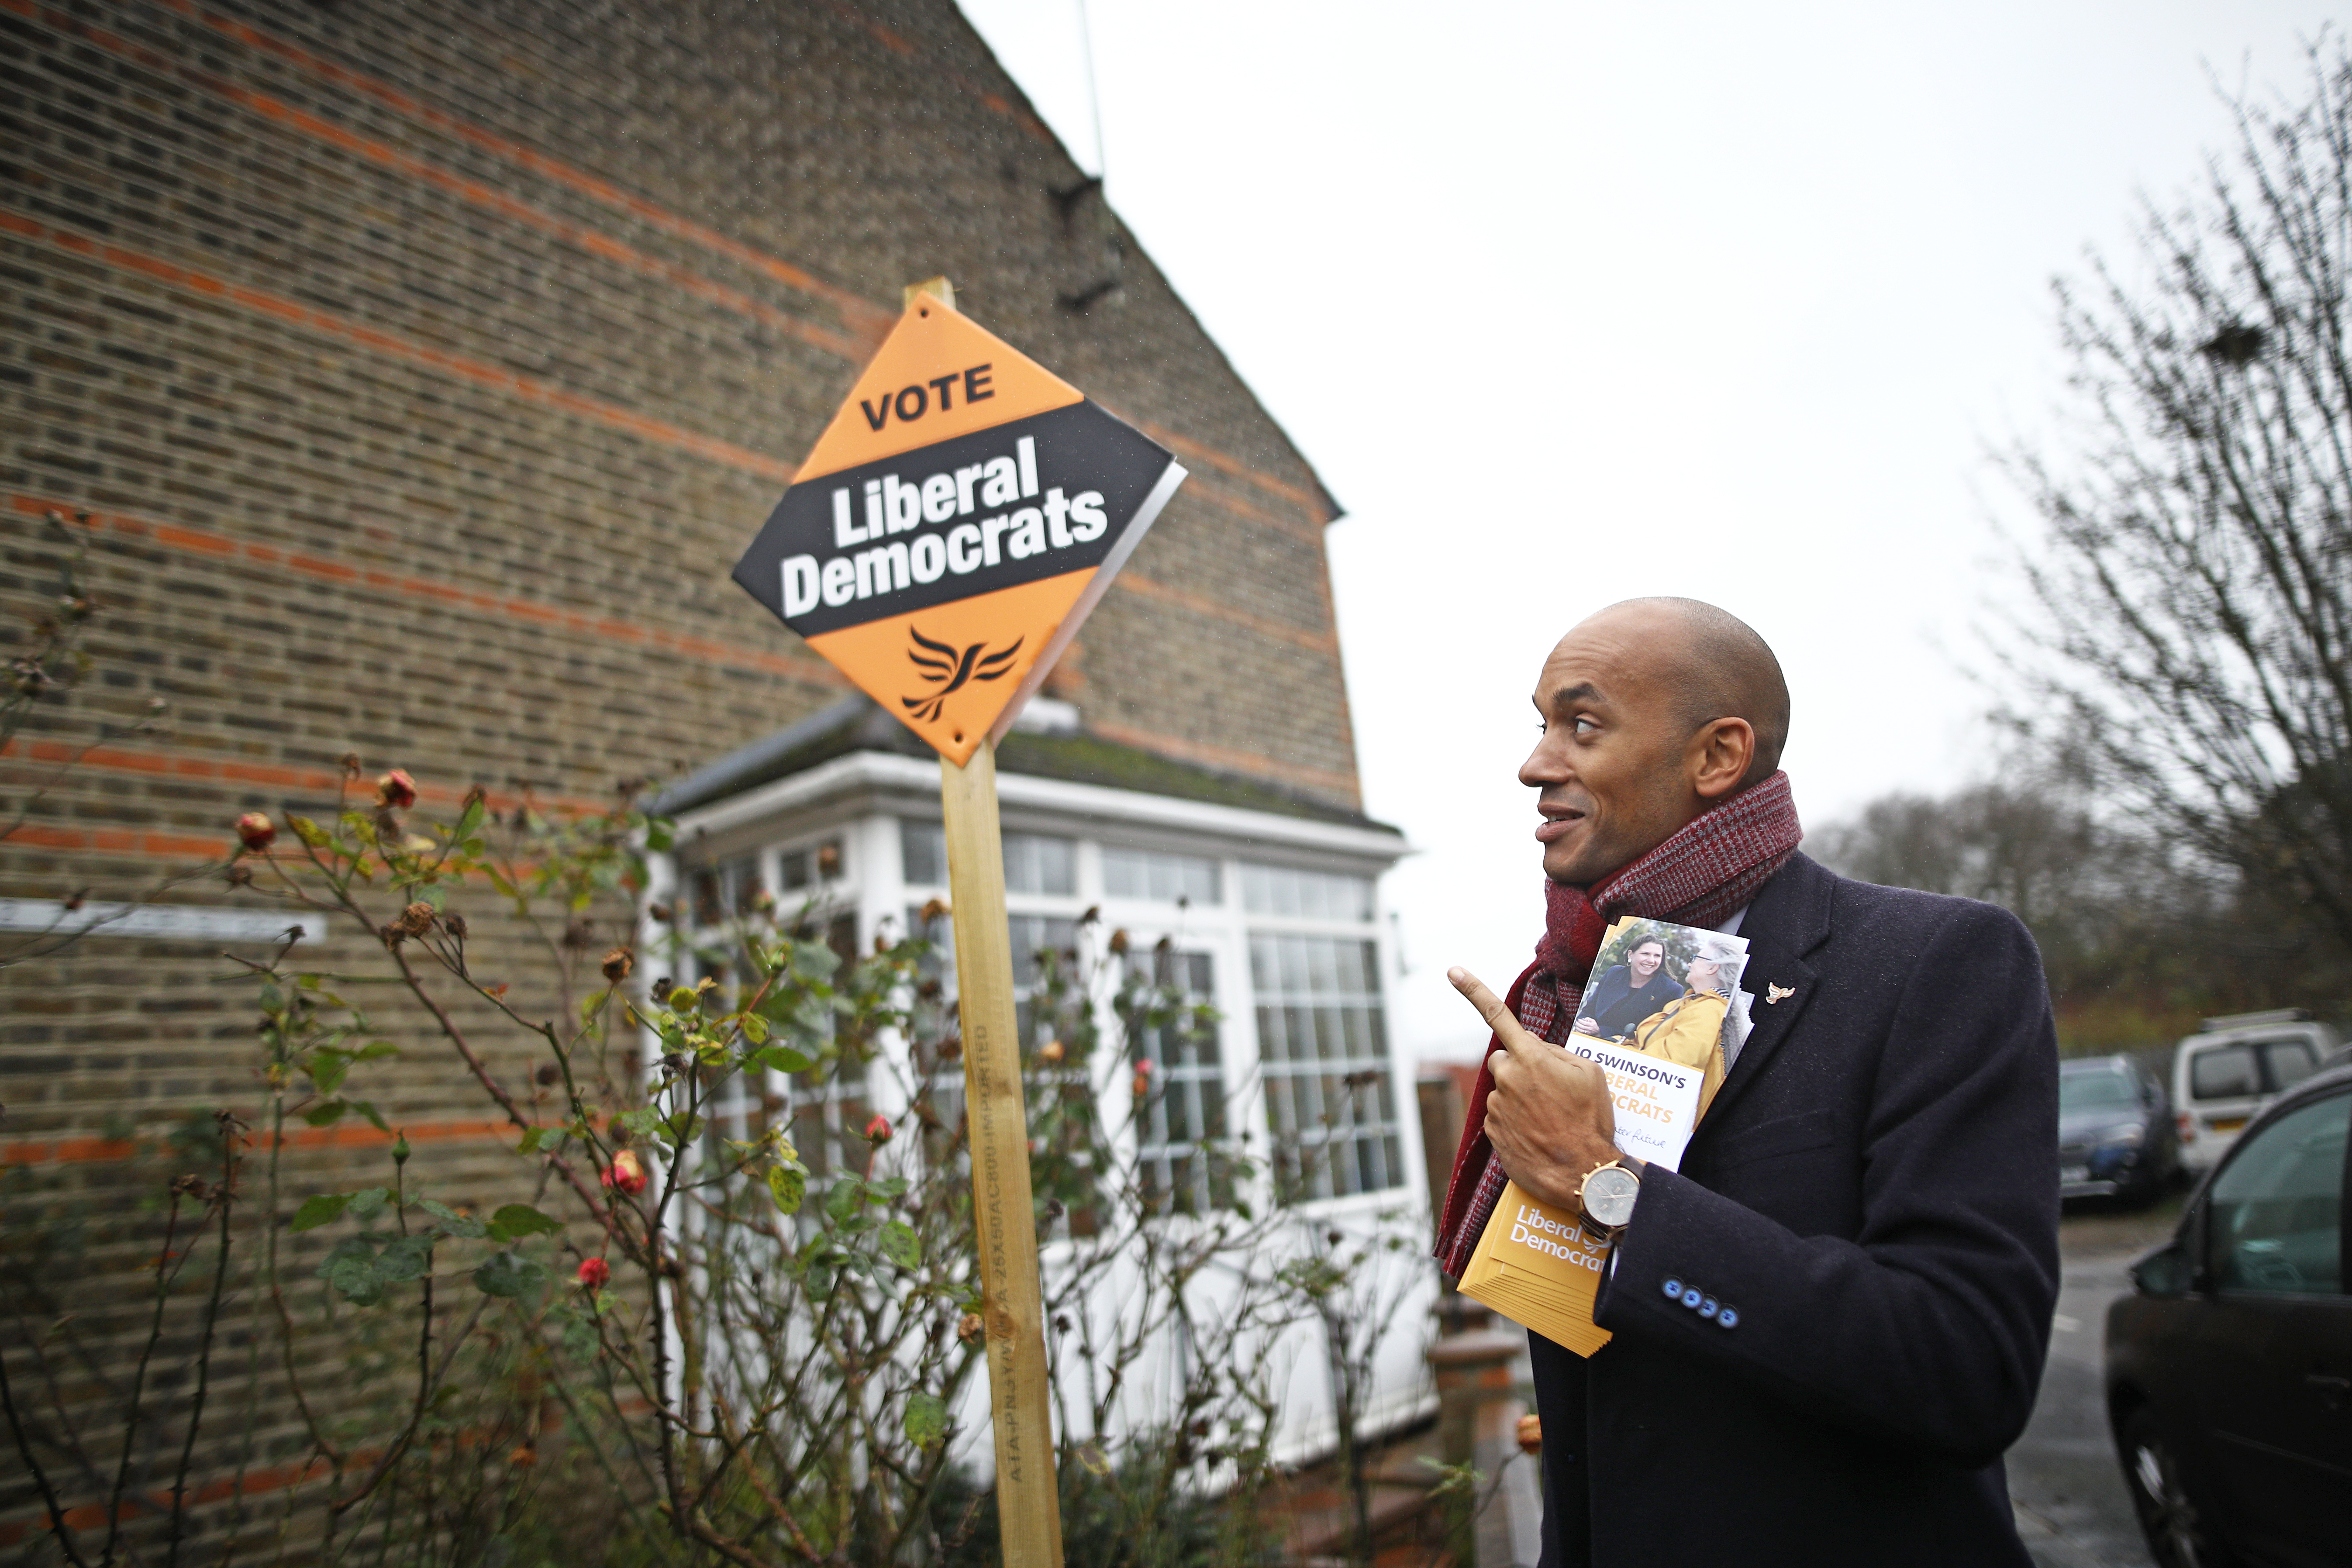 Liberal Democrat candidate Chuka Umunna out canvassing whilst on the General Election campaign trail in Watford.